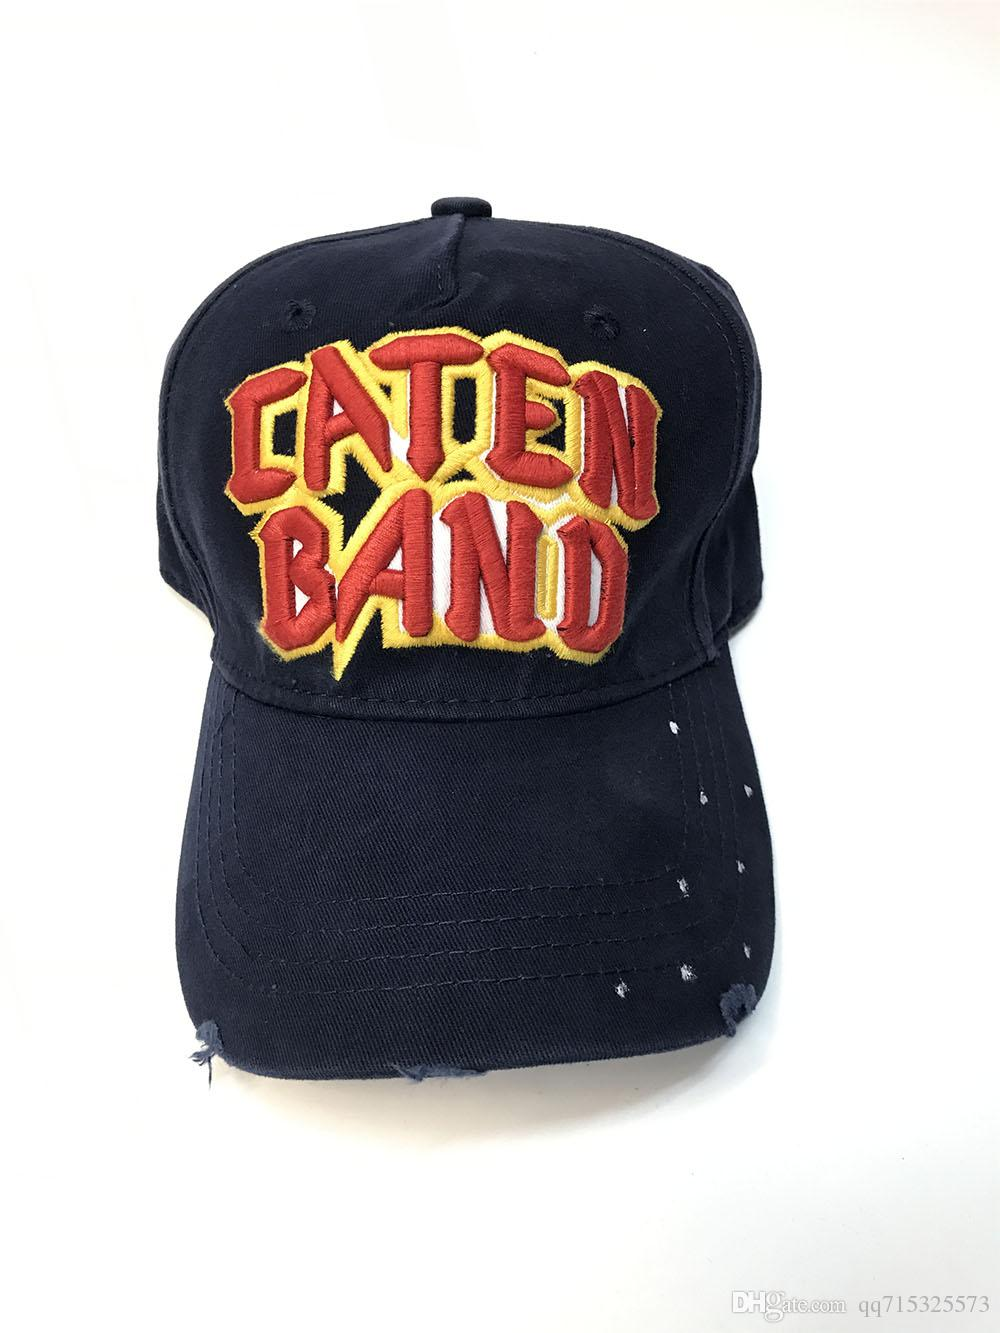 75856f7bf9d CATEN BAND Cotton Fasion Leisure Baseball Cap Hat For Men Snapback Hat  Casquette Women S Cap Wholesale Fashion Accessories Baseball Caps Custom  Hats From ...